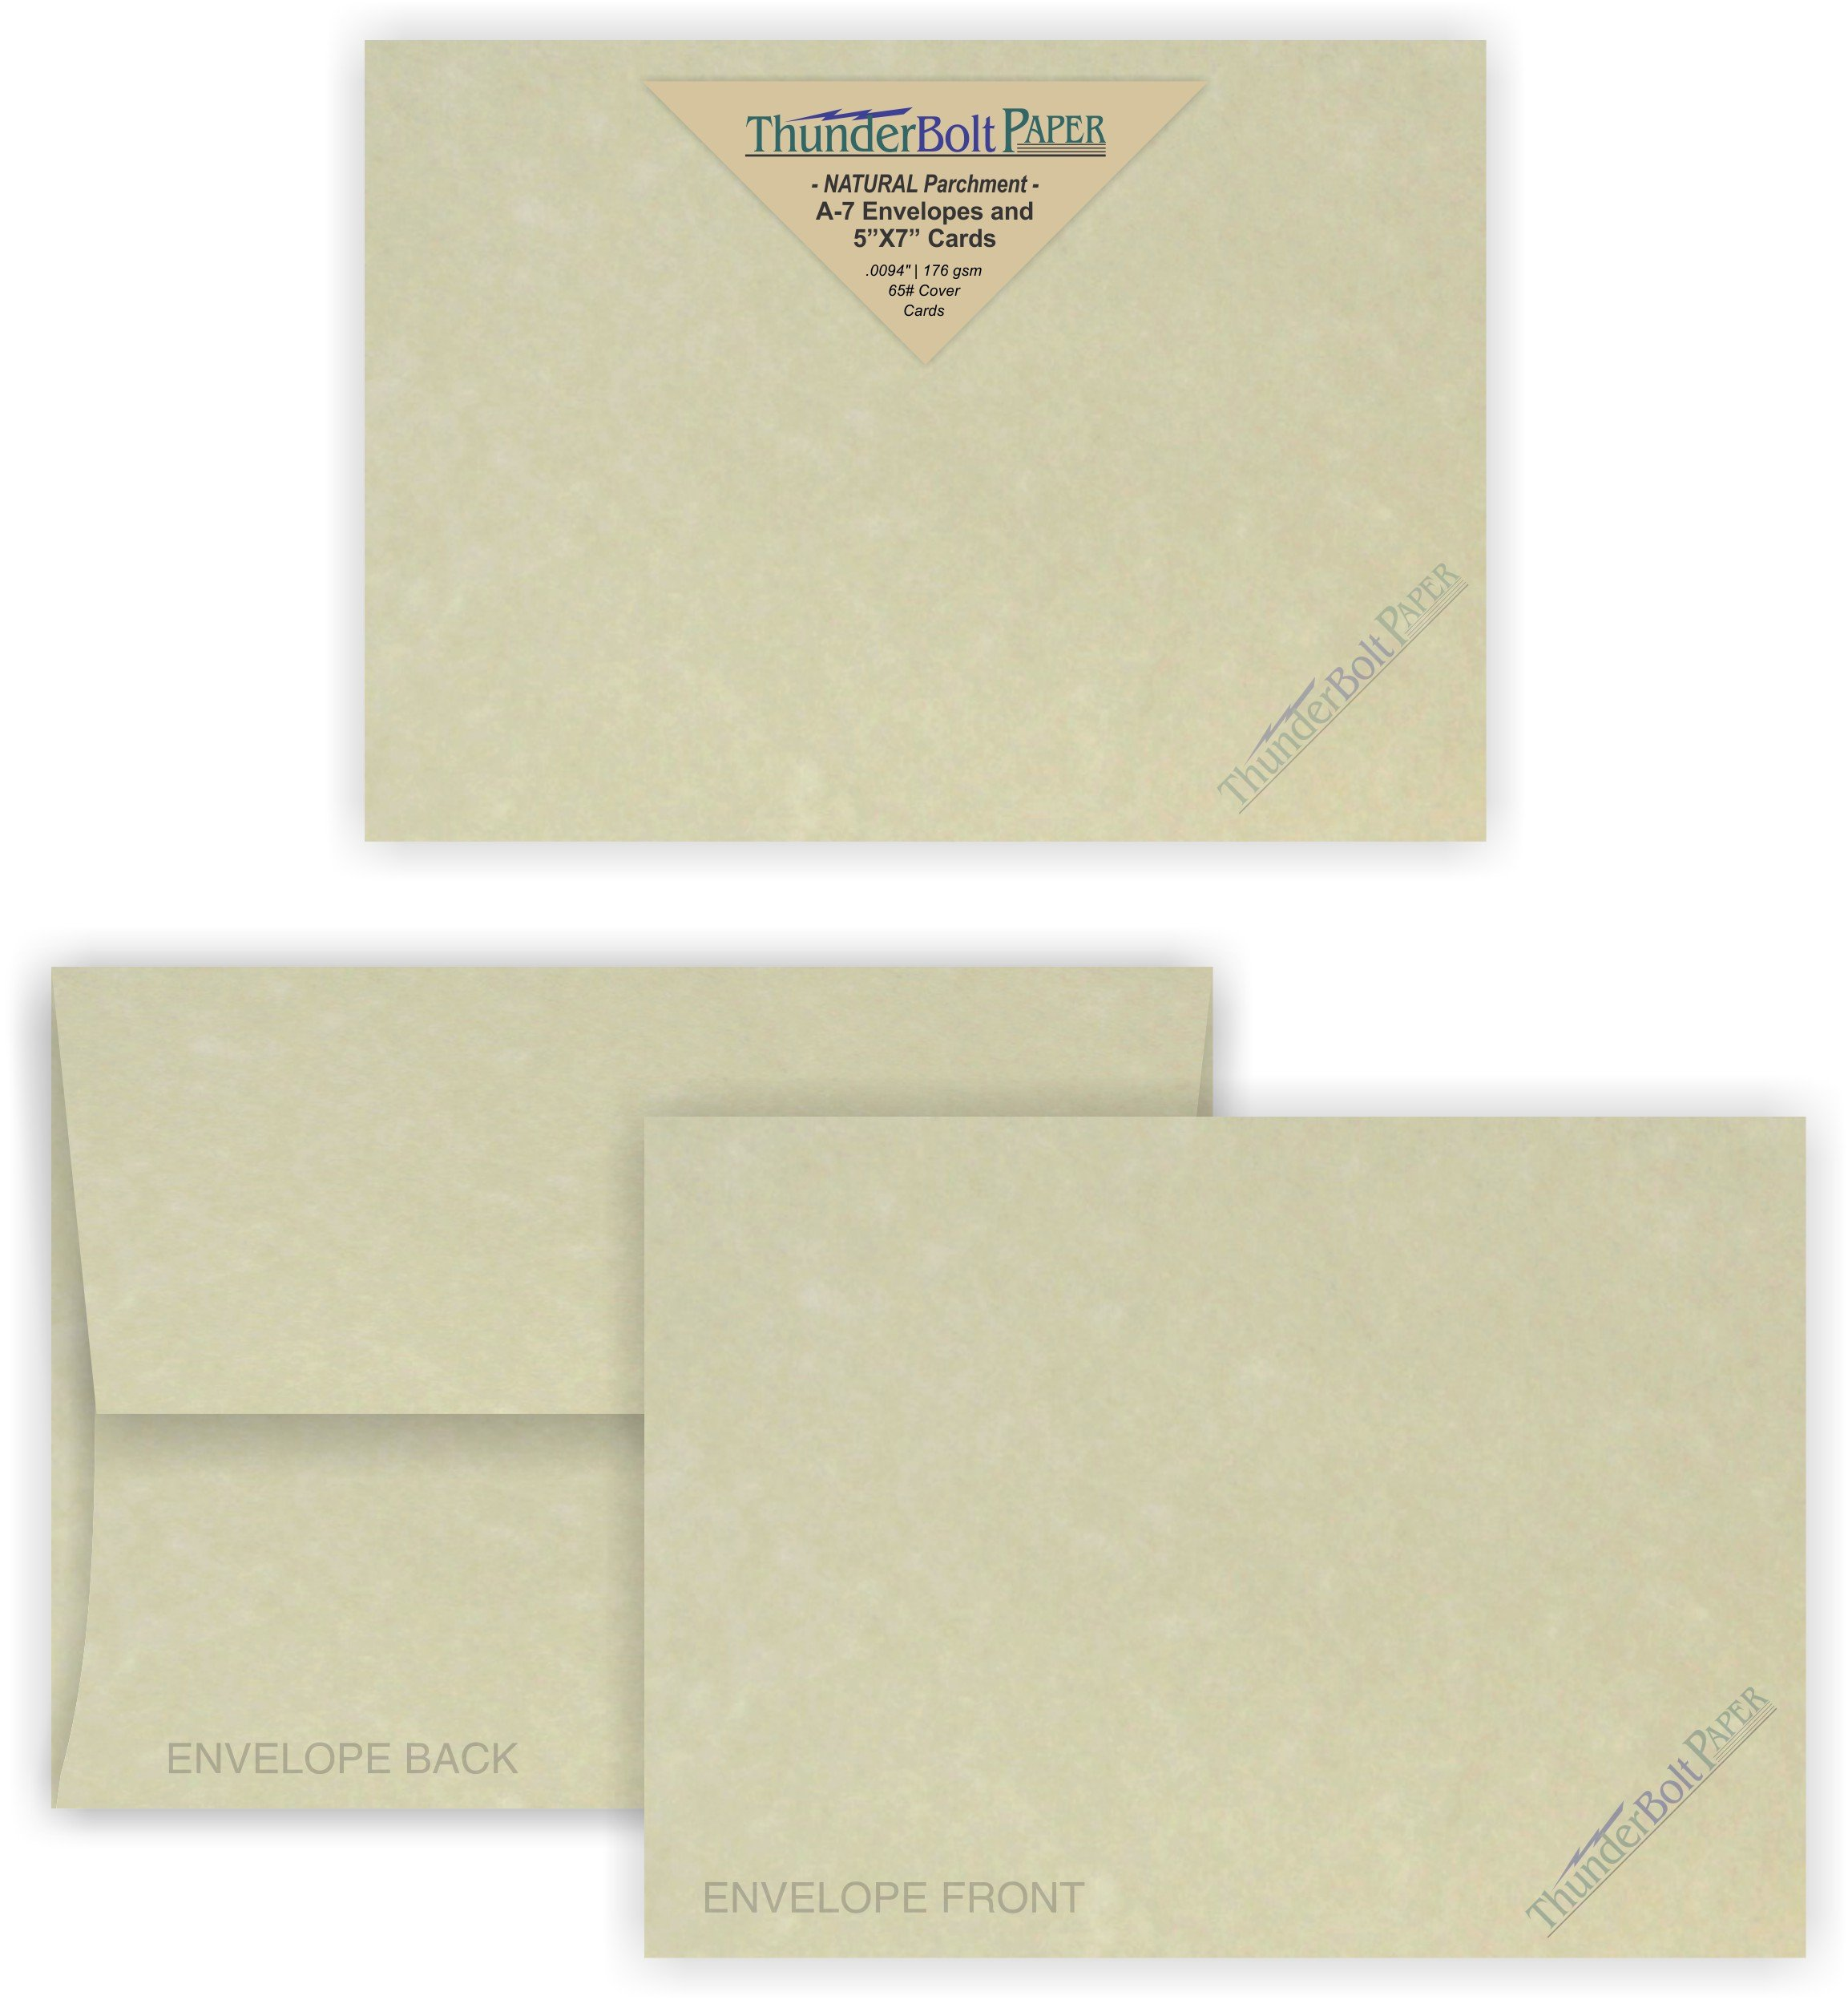 5X7 Blank Cards with A-7 Envelopes - Natural Parchment Look - 50 Sets by Thunderbolt Paper - Lighter & Darker Colors of Pulp - Invitations, Greeting, Thank Yous, Notes, Weddings - 65# Light Cover